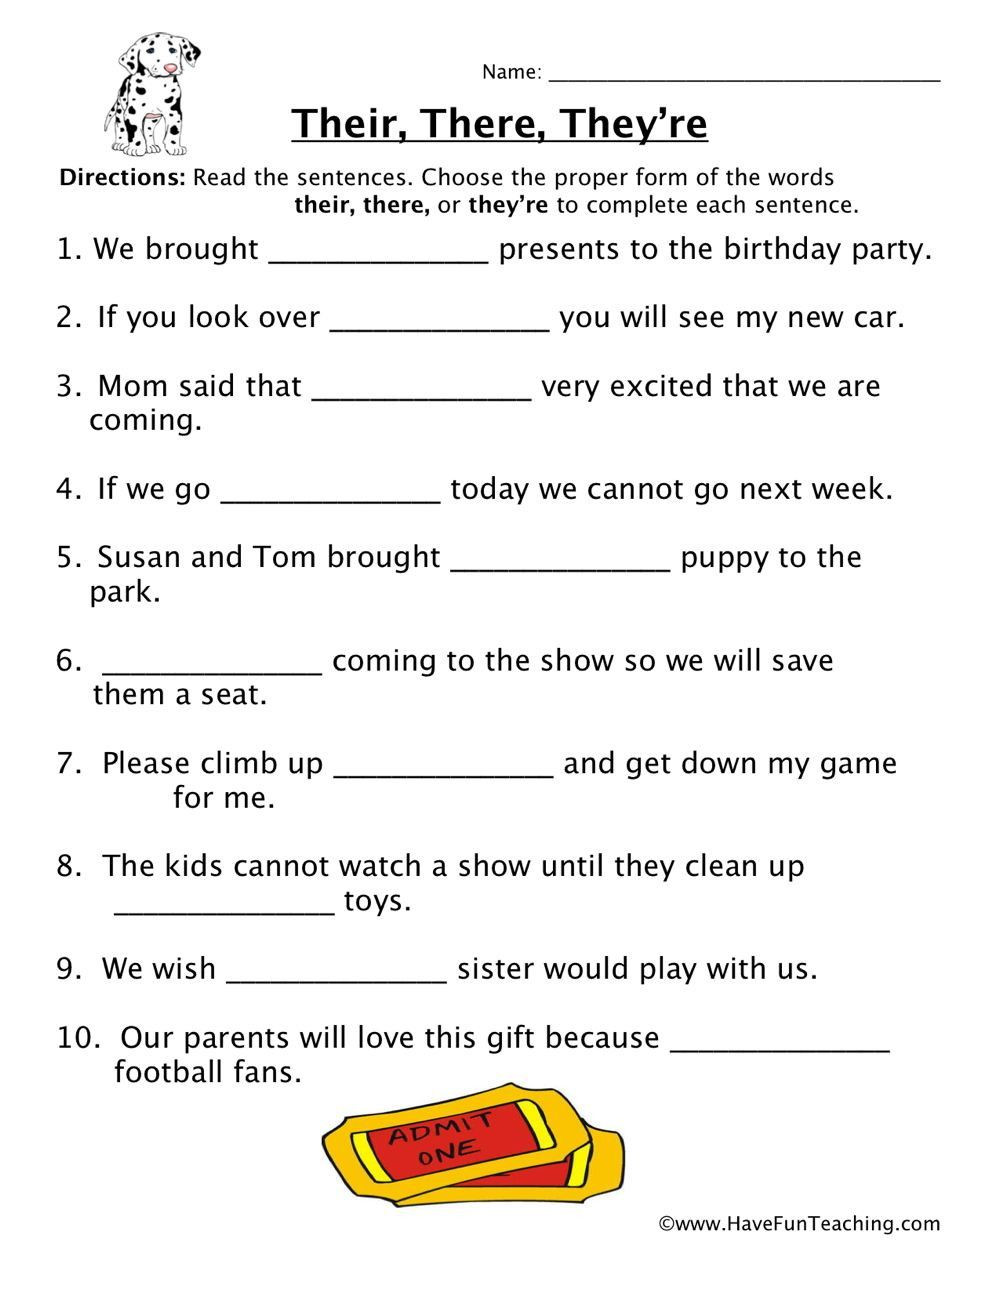 Homophones Worksheet 5th Grade Homophones Worksheet 5th Grade In 2020